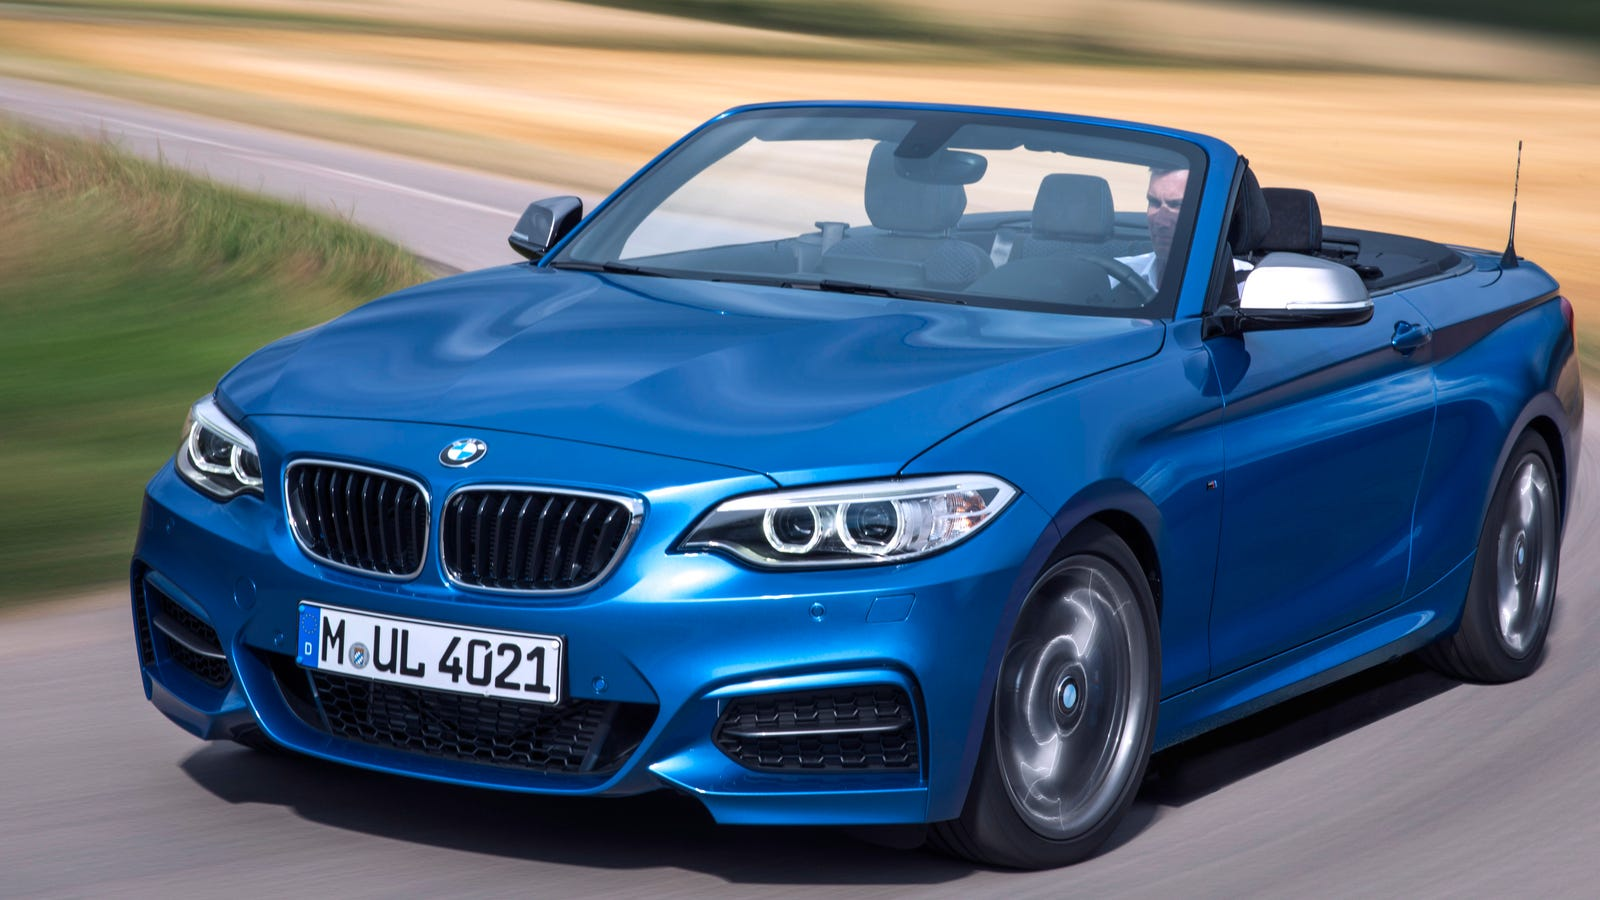 2015 bmw 2 series convertible this is it and it gets awd. Black Bedroom Furniture Sets. Home Design Ideas